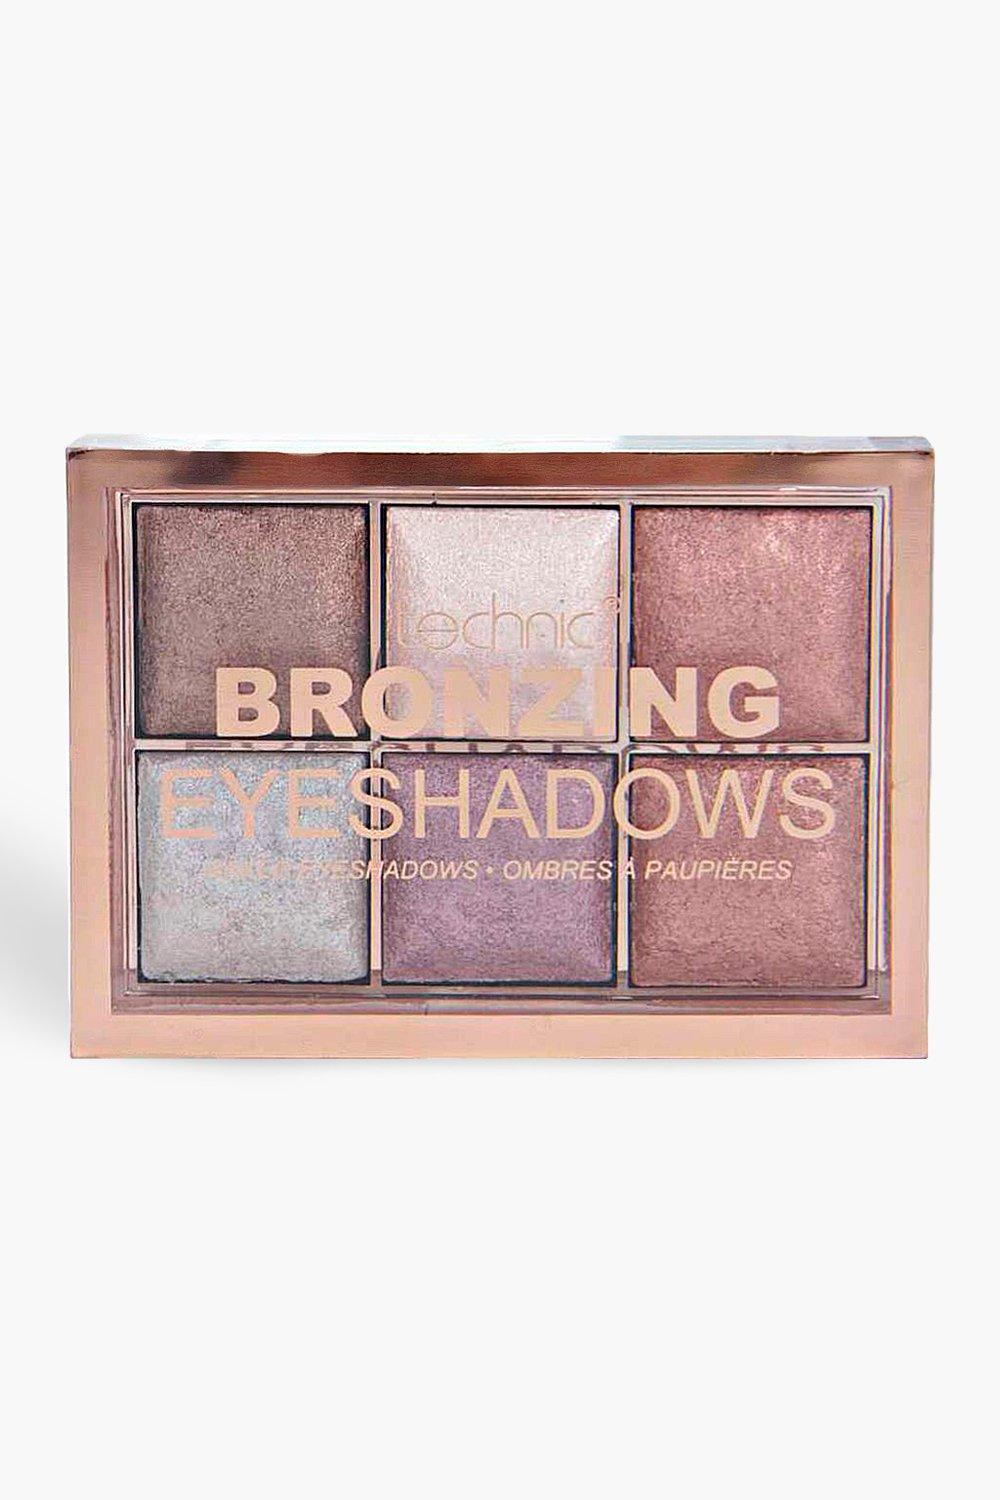 Technic Womens Technic Bronzing Eyeshadow Palette - Brown - One Size, Brown